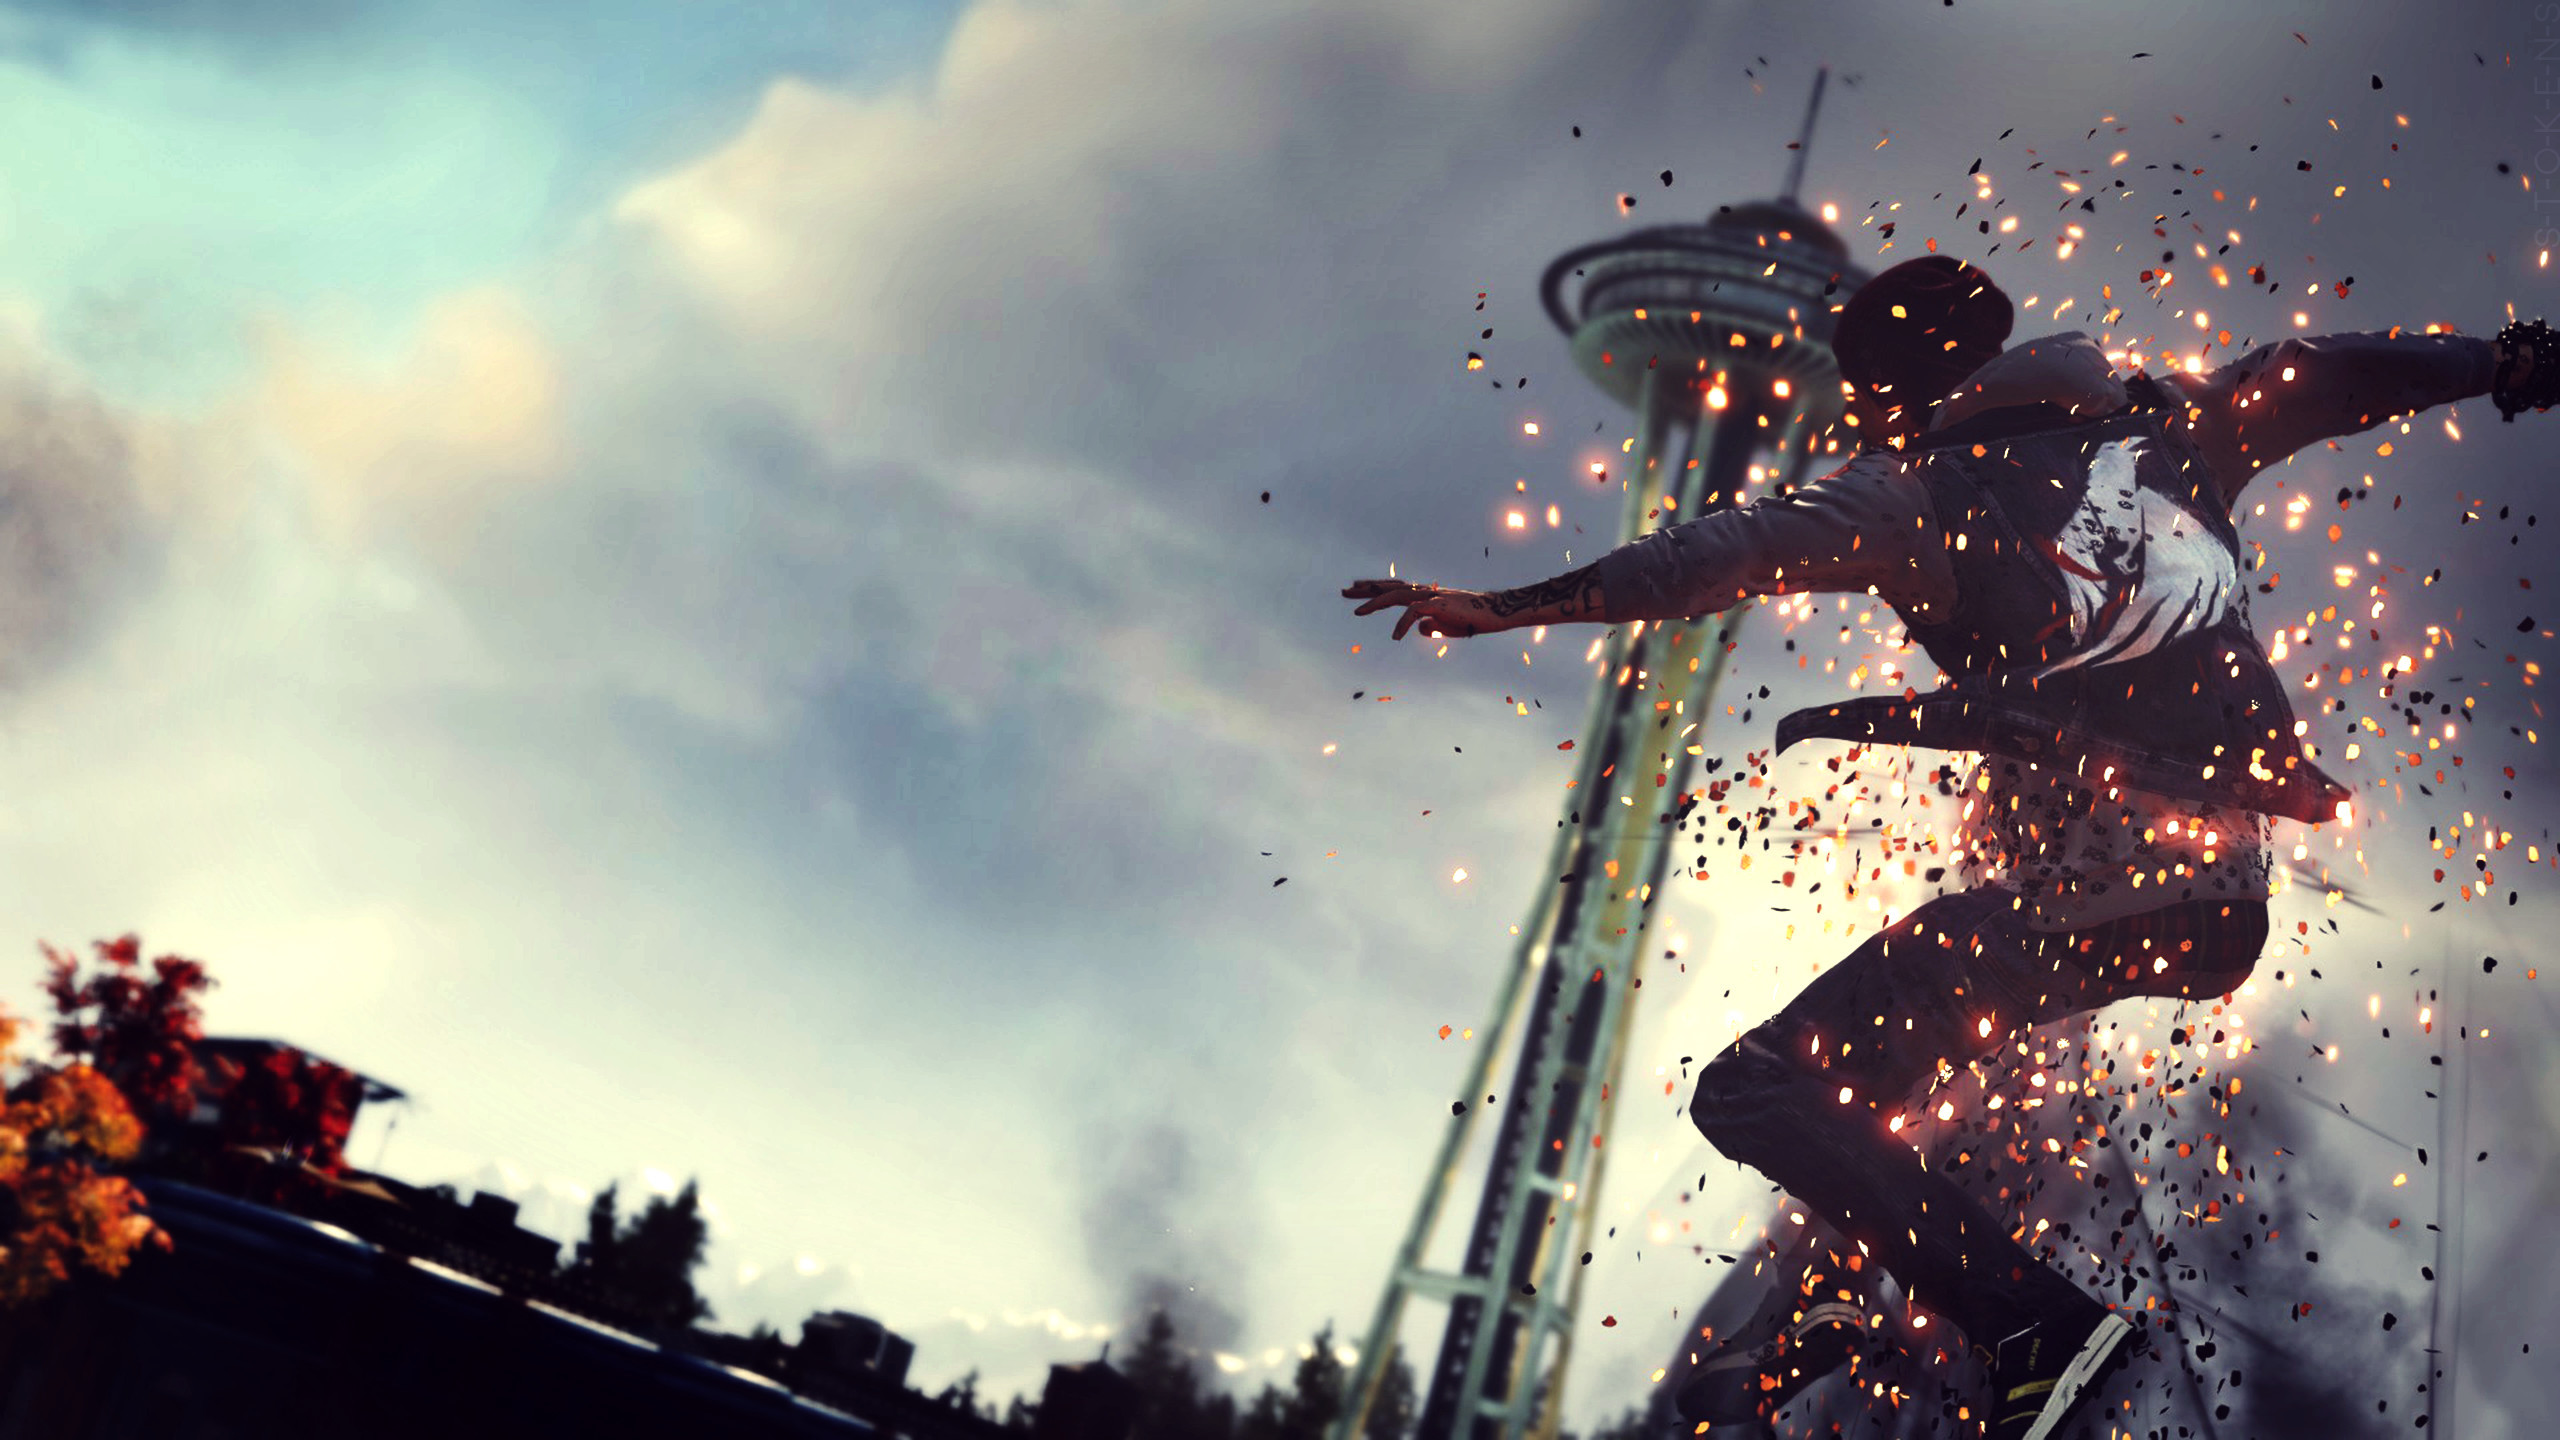 2560x1440 1920x1080 inFAMOUS: First Light HD Wallpapers 14 - 1920 X 1080